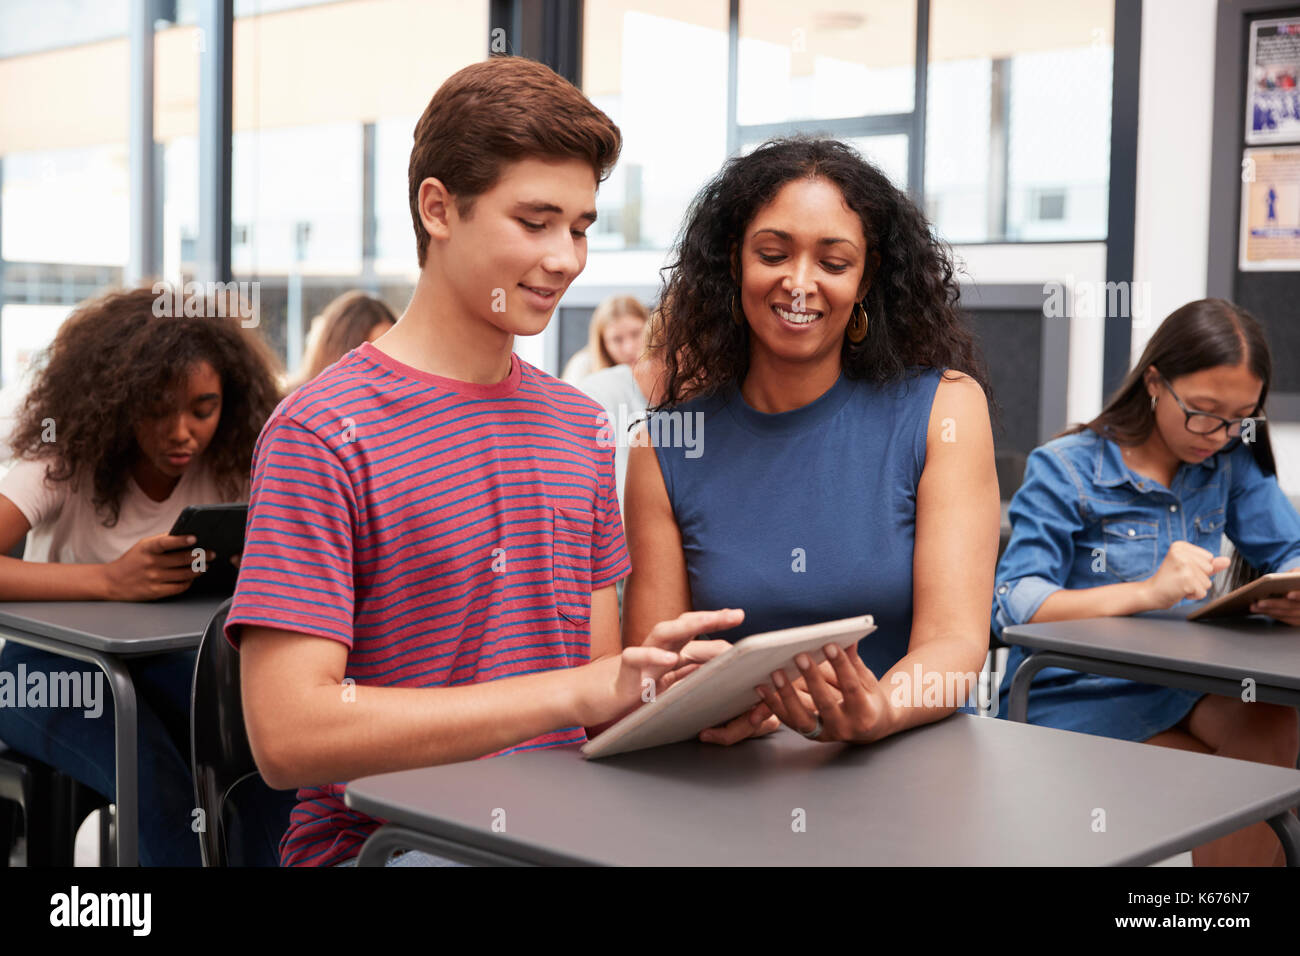 Teacher helping teenage schoolboy with tablet computer - Stock Image